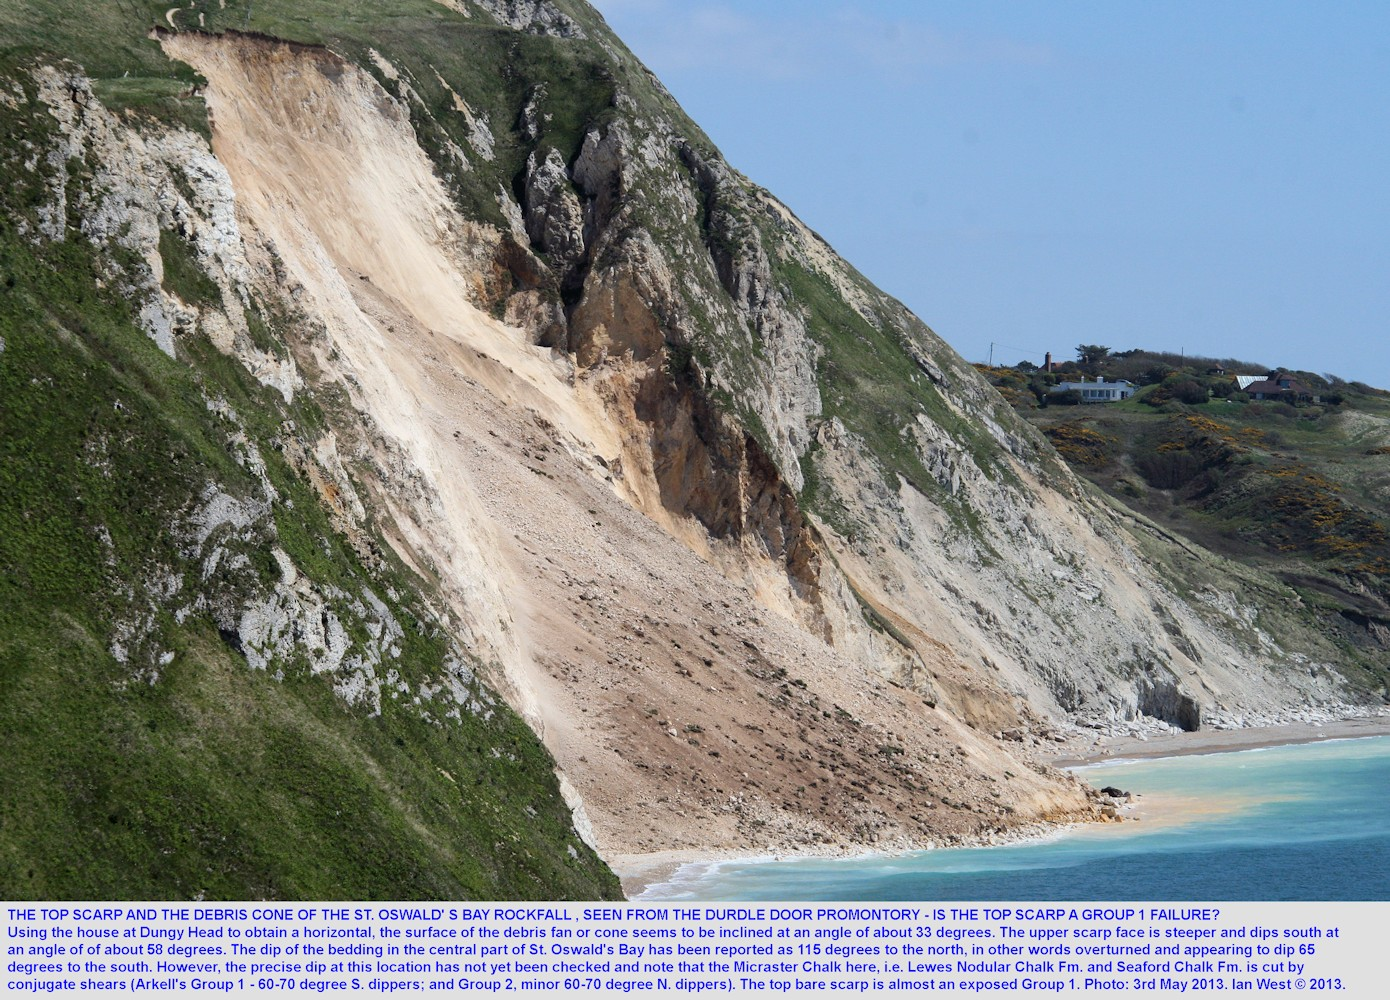 The Chalk Rockfall of St. Oswald's Bay, west of Lulworth Cove, Dorset, showing the angles of the top scarp and the debris cone, 3rd May 2013